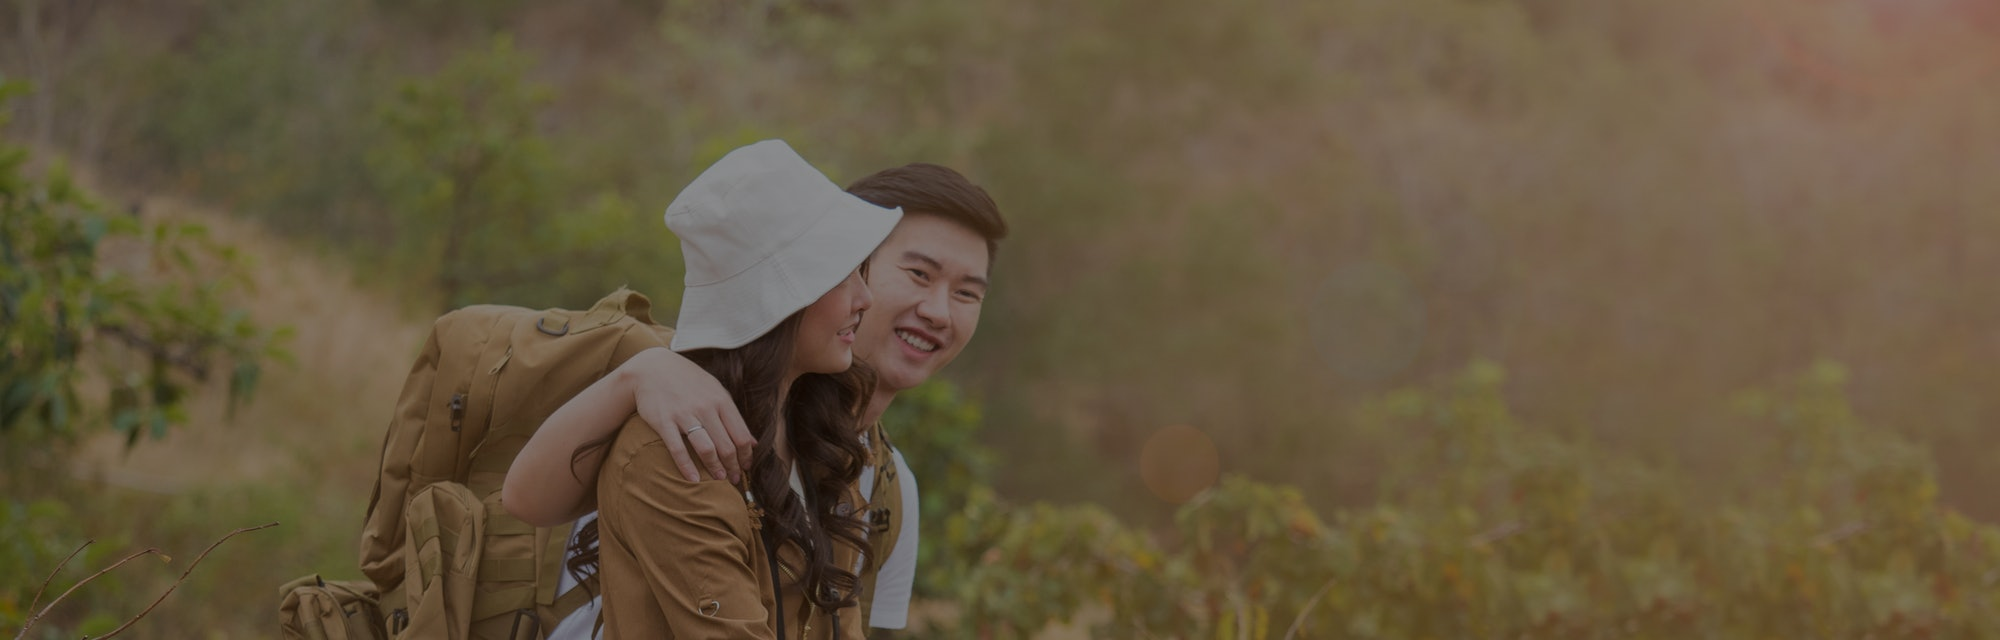 Young Asian couple, newly weds or lovers exploring forest, green naature. Tourist, backpack adventure enjoying the scenery of the natural park.